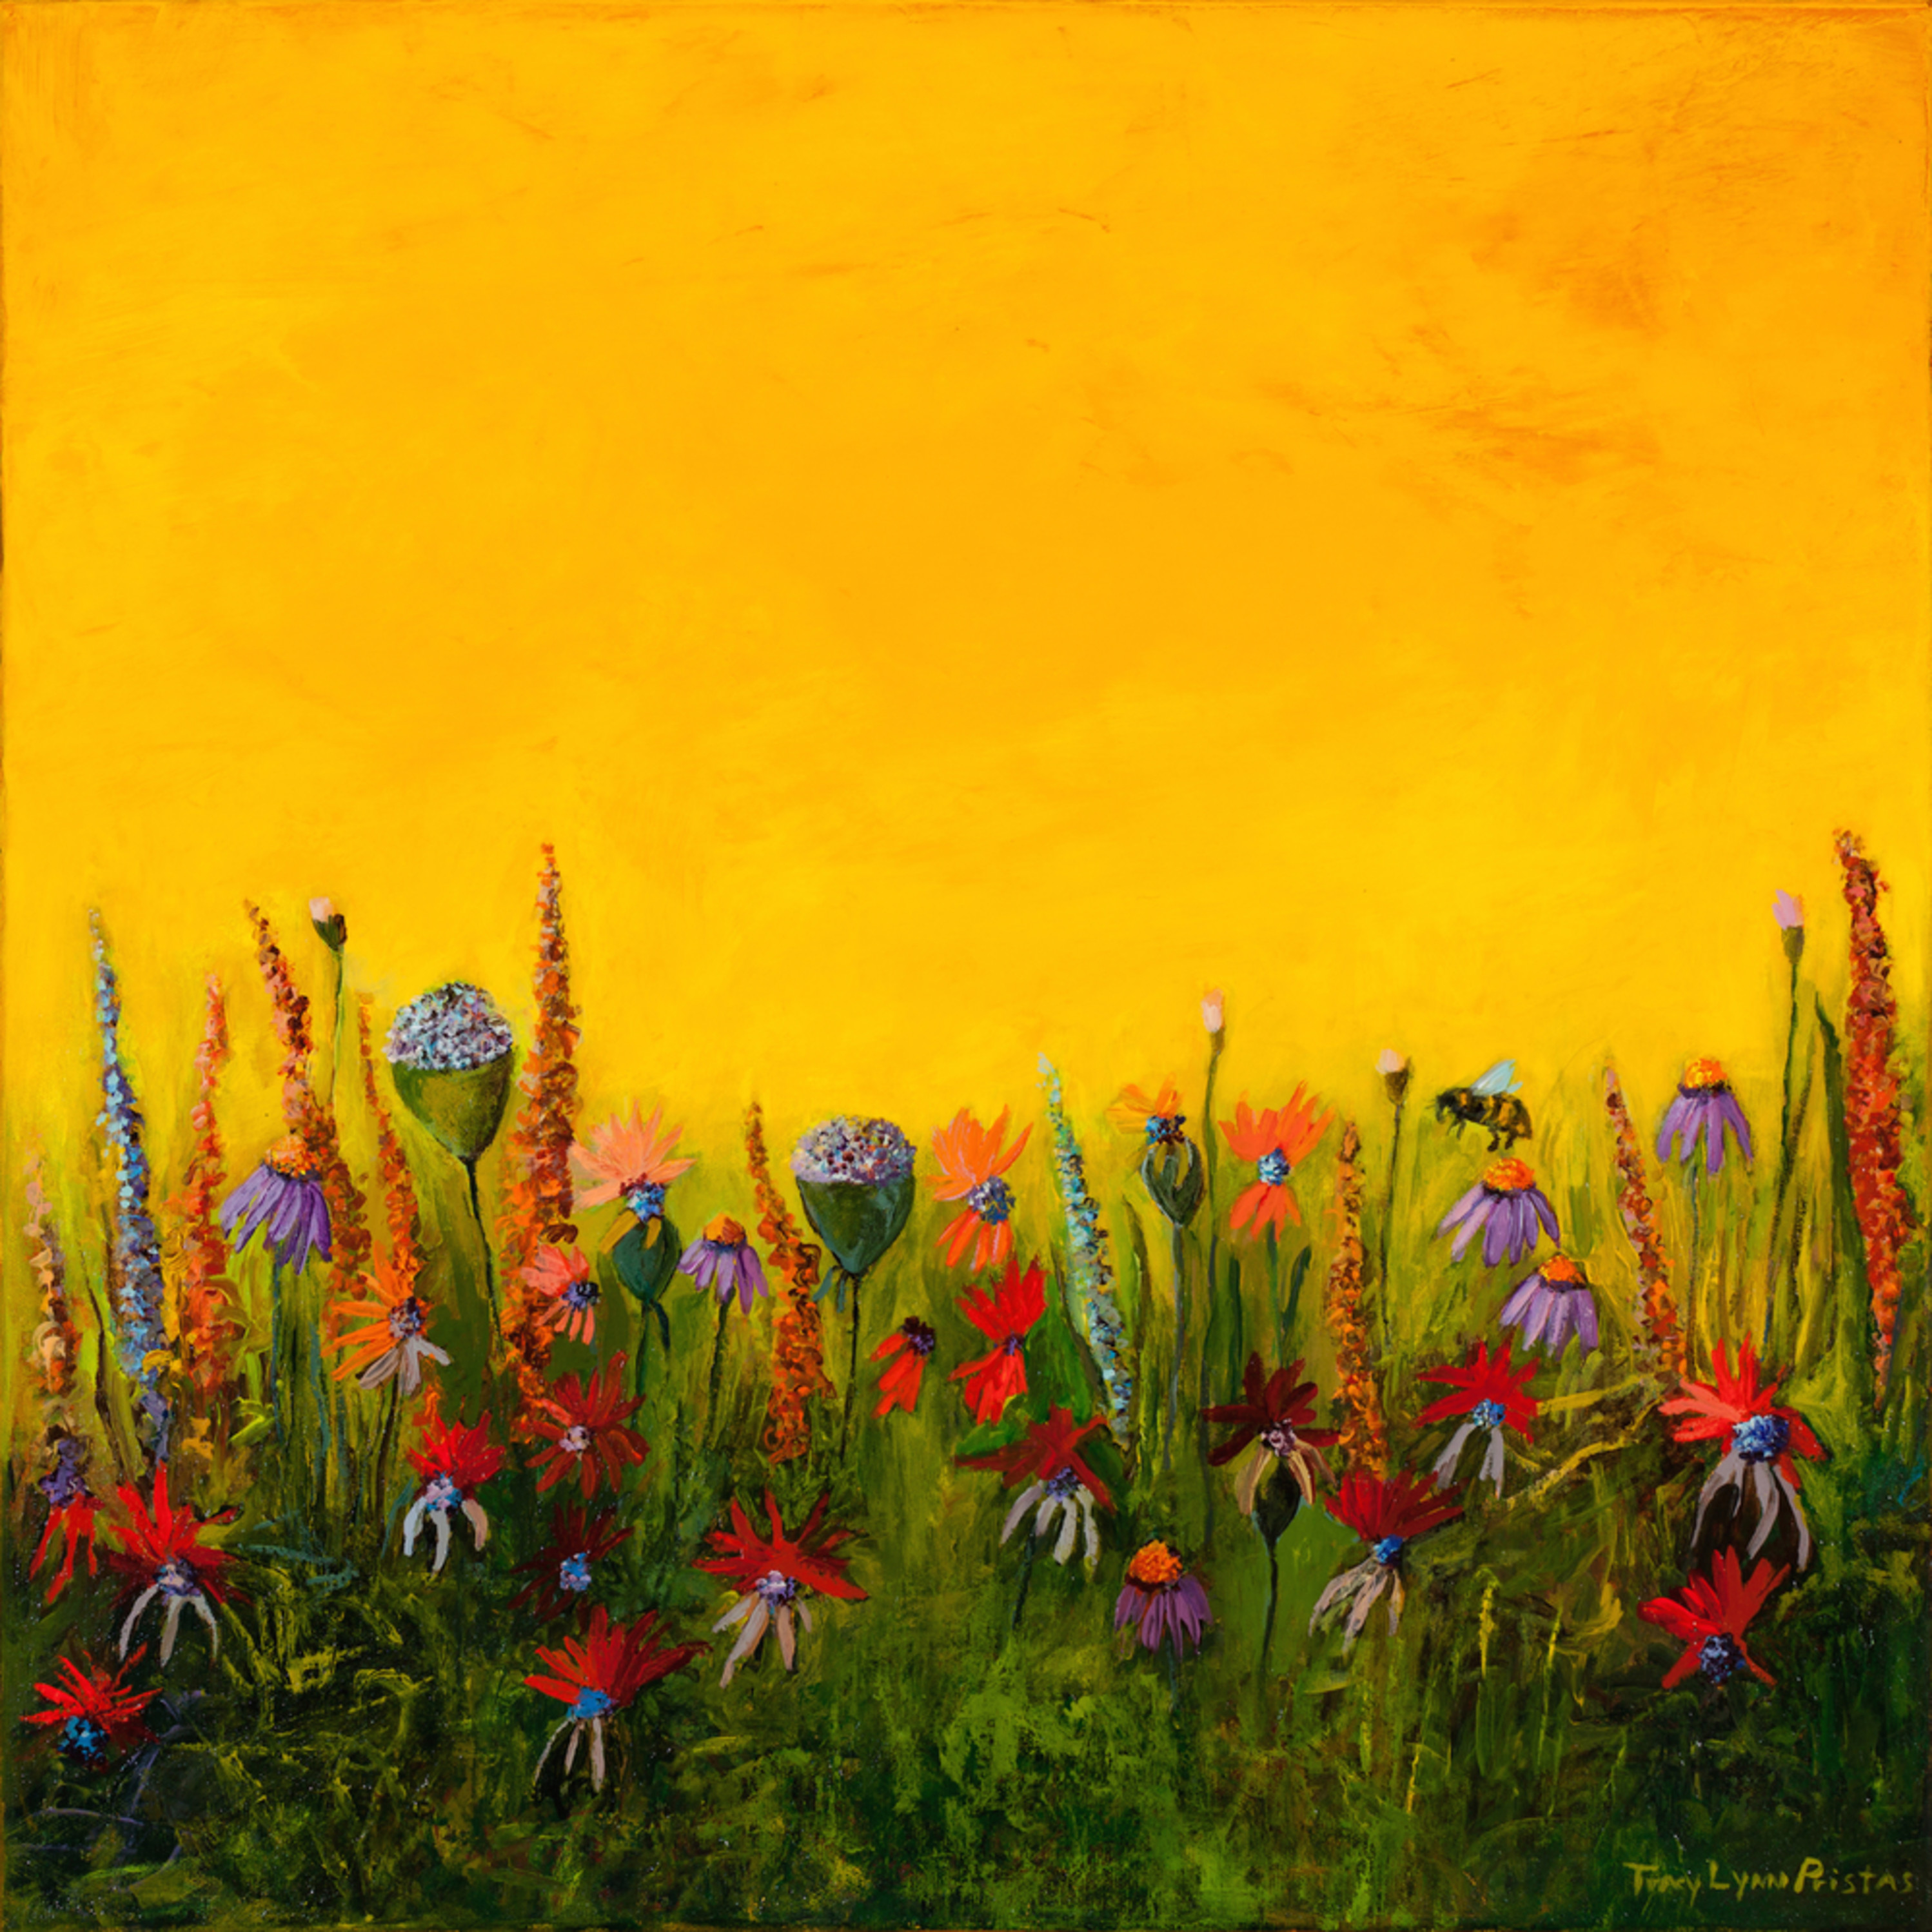 Wildflower art bee painting prints tracy lynn pristas brilliant wishes jpg nlffe2